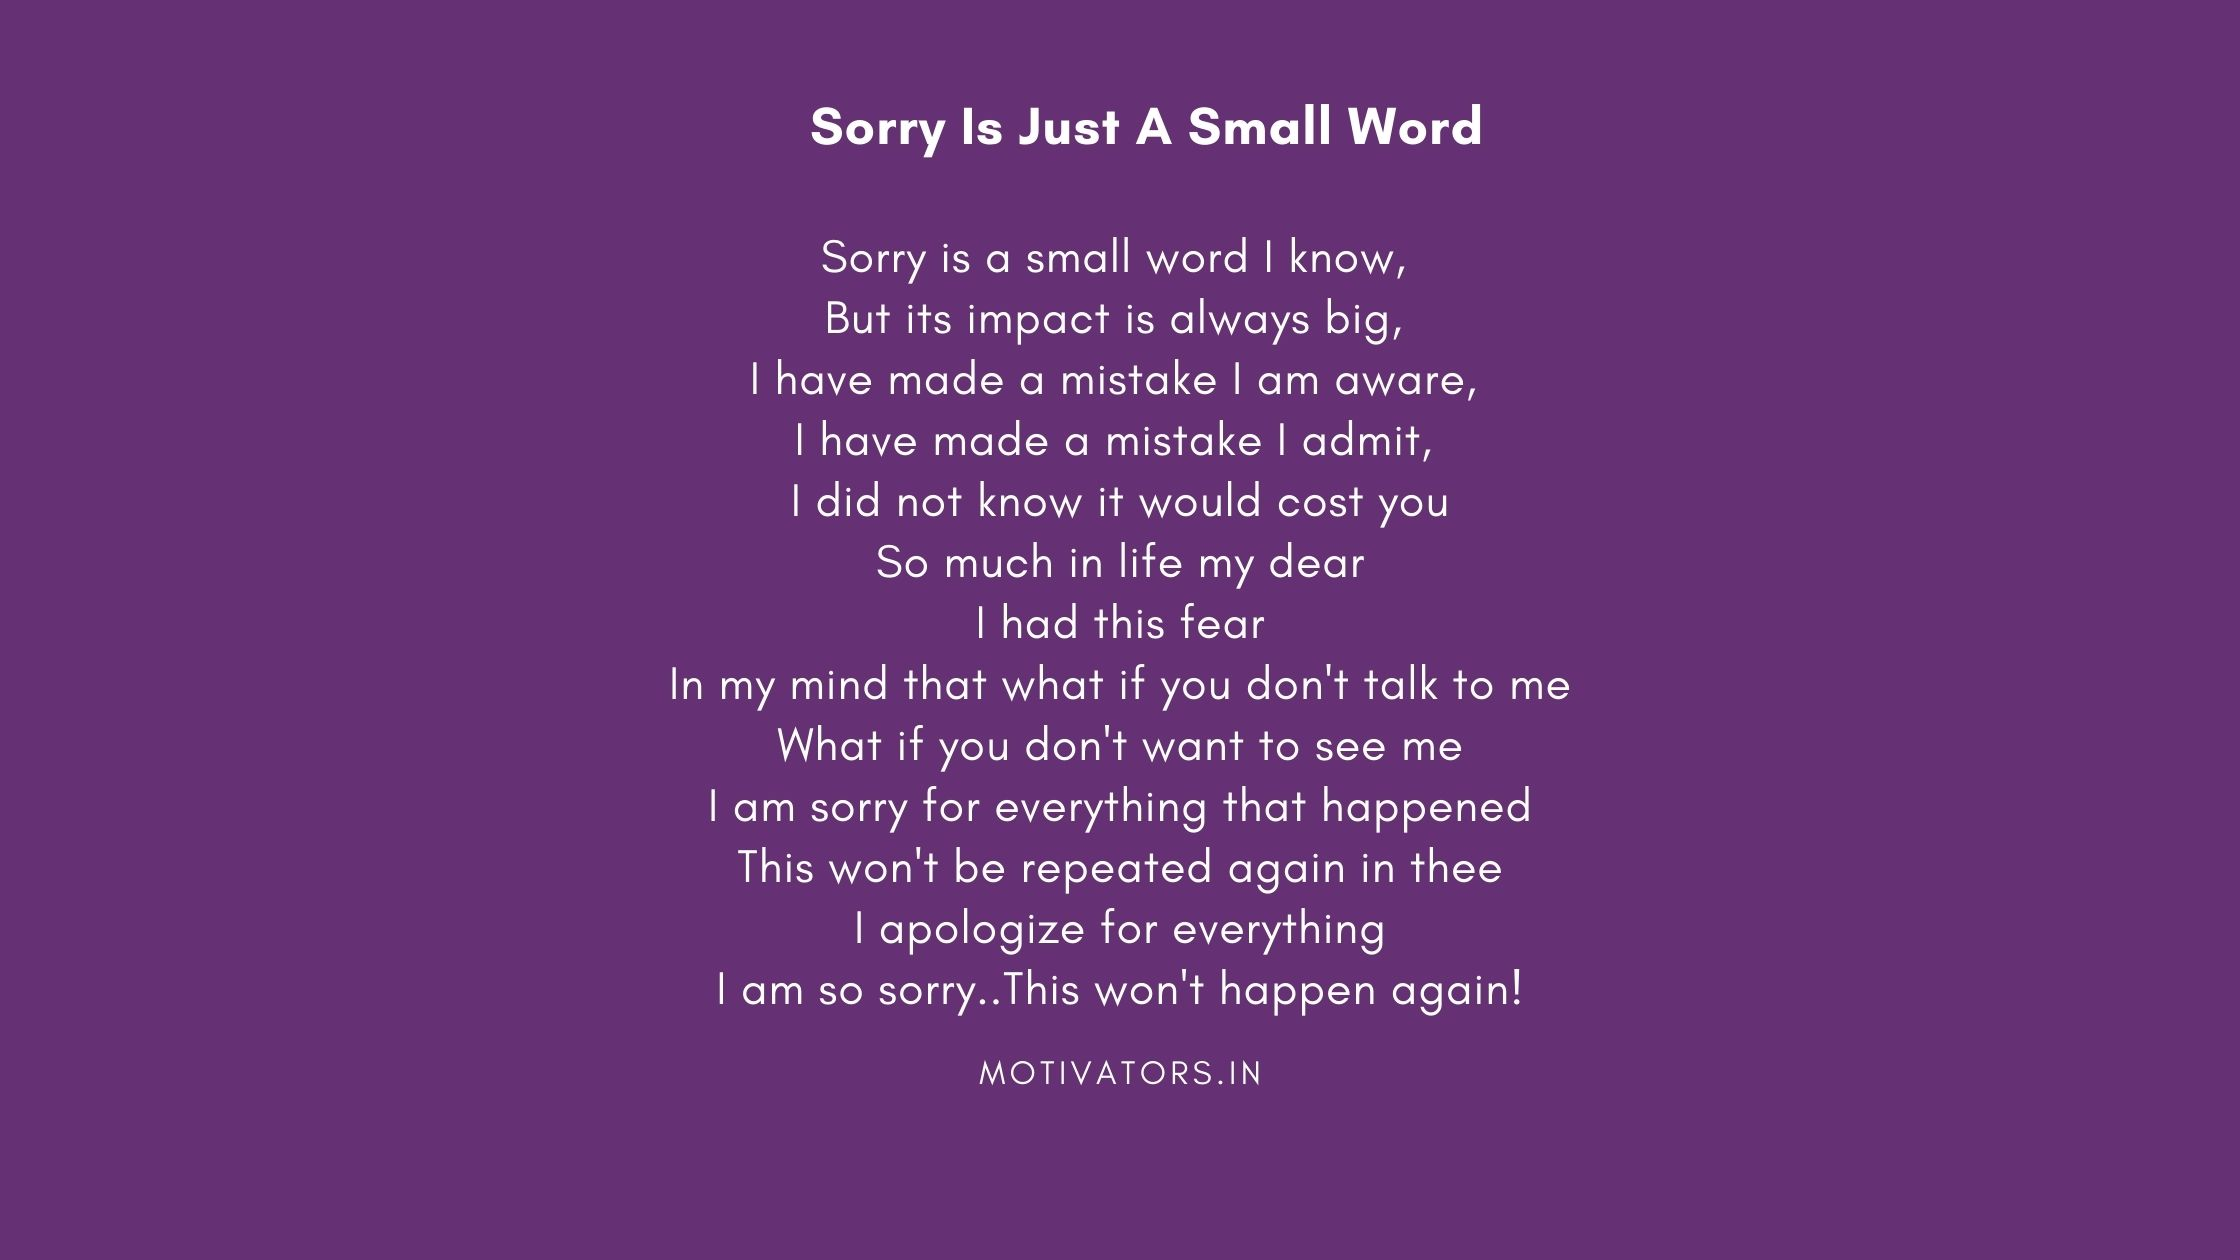 Sorry Is Just A Small Word